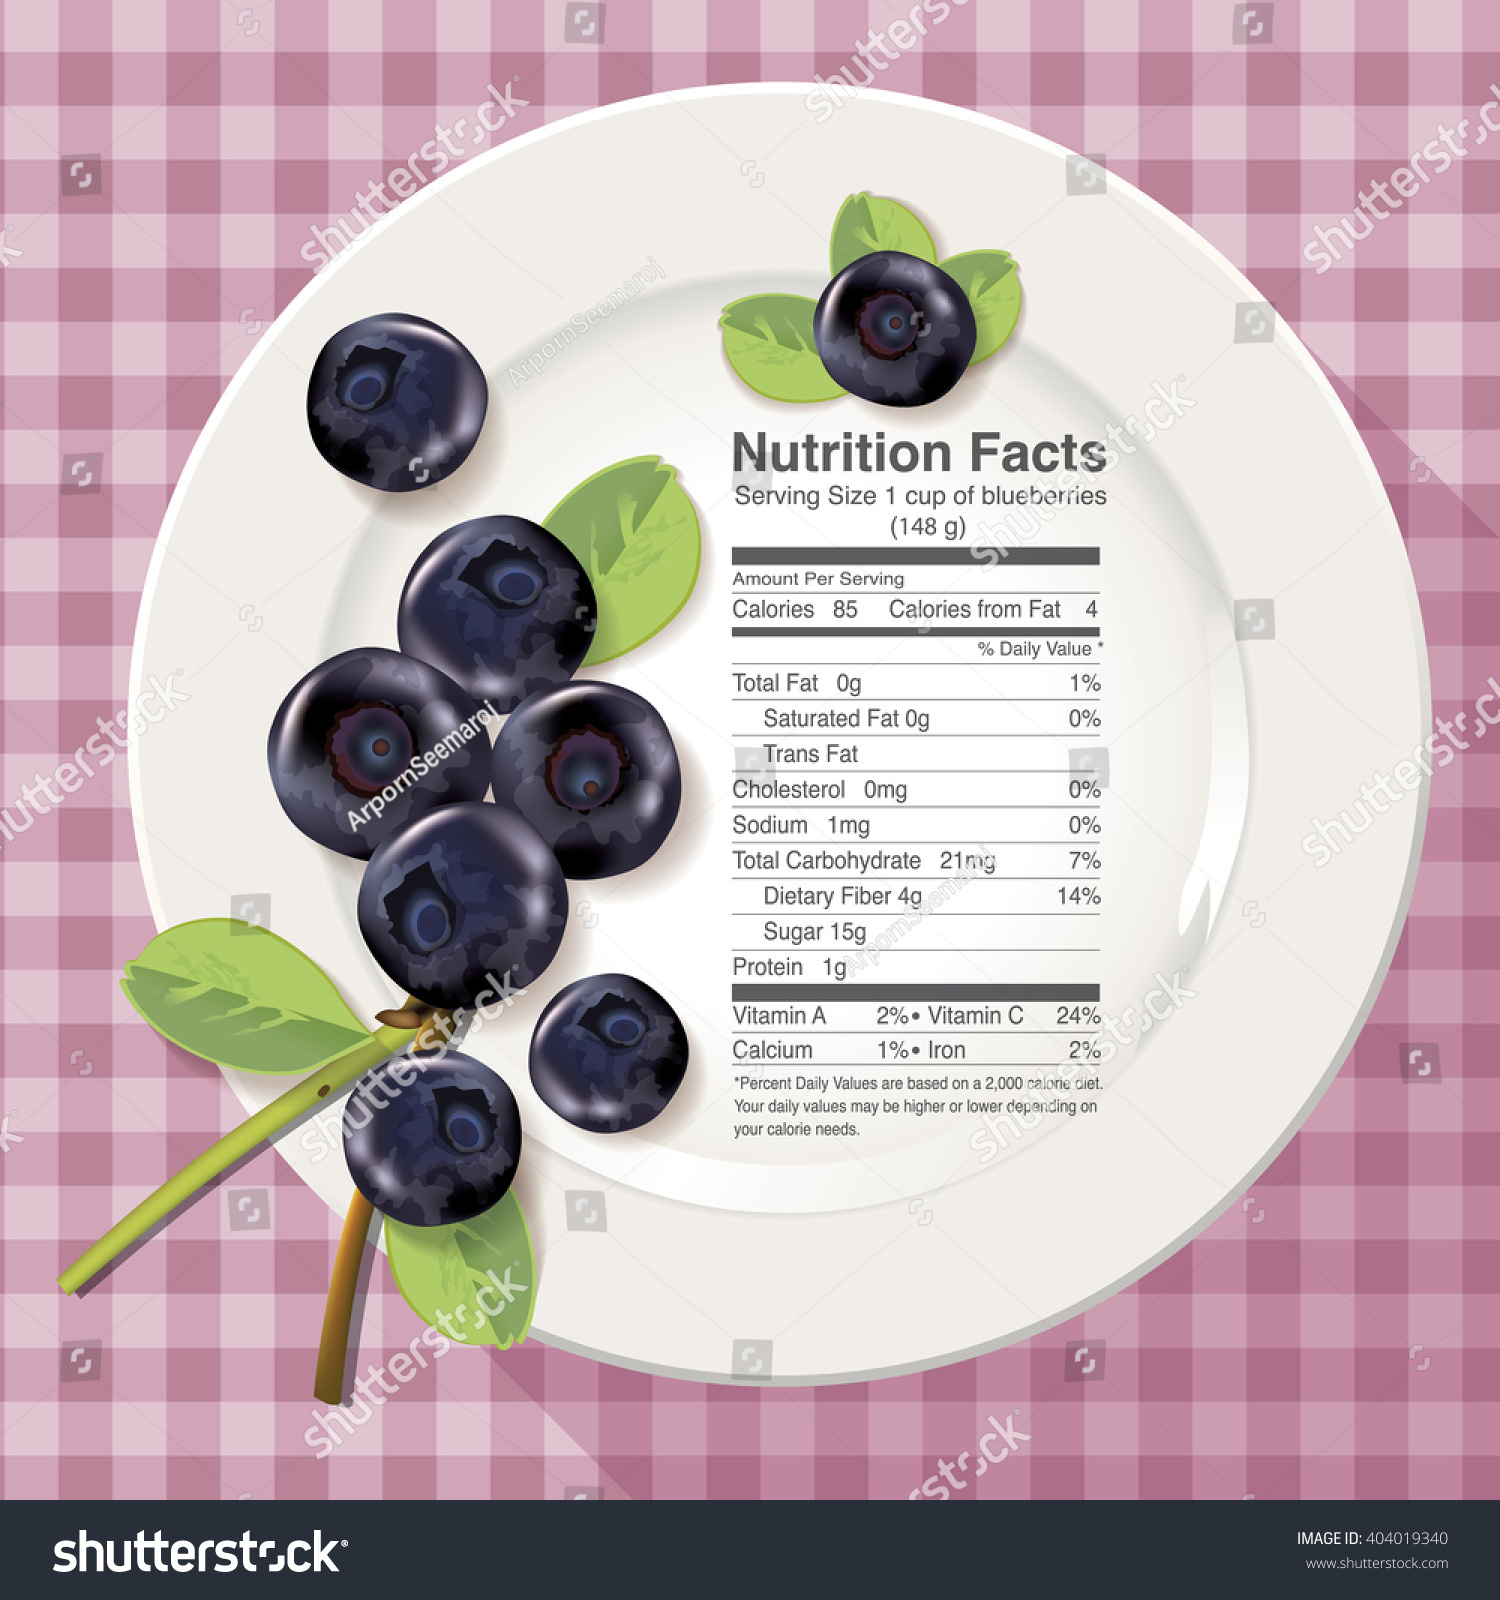 Vector Nutrition Facts Blueberries On White Stock Vector Royalty Free 404019340